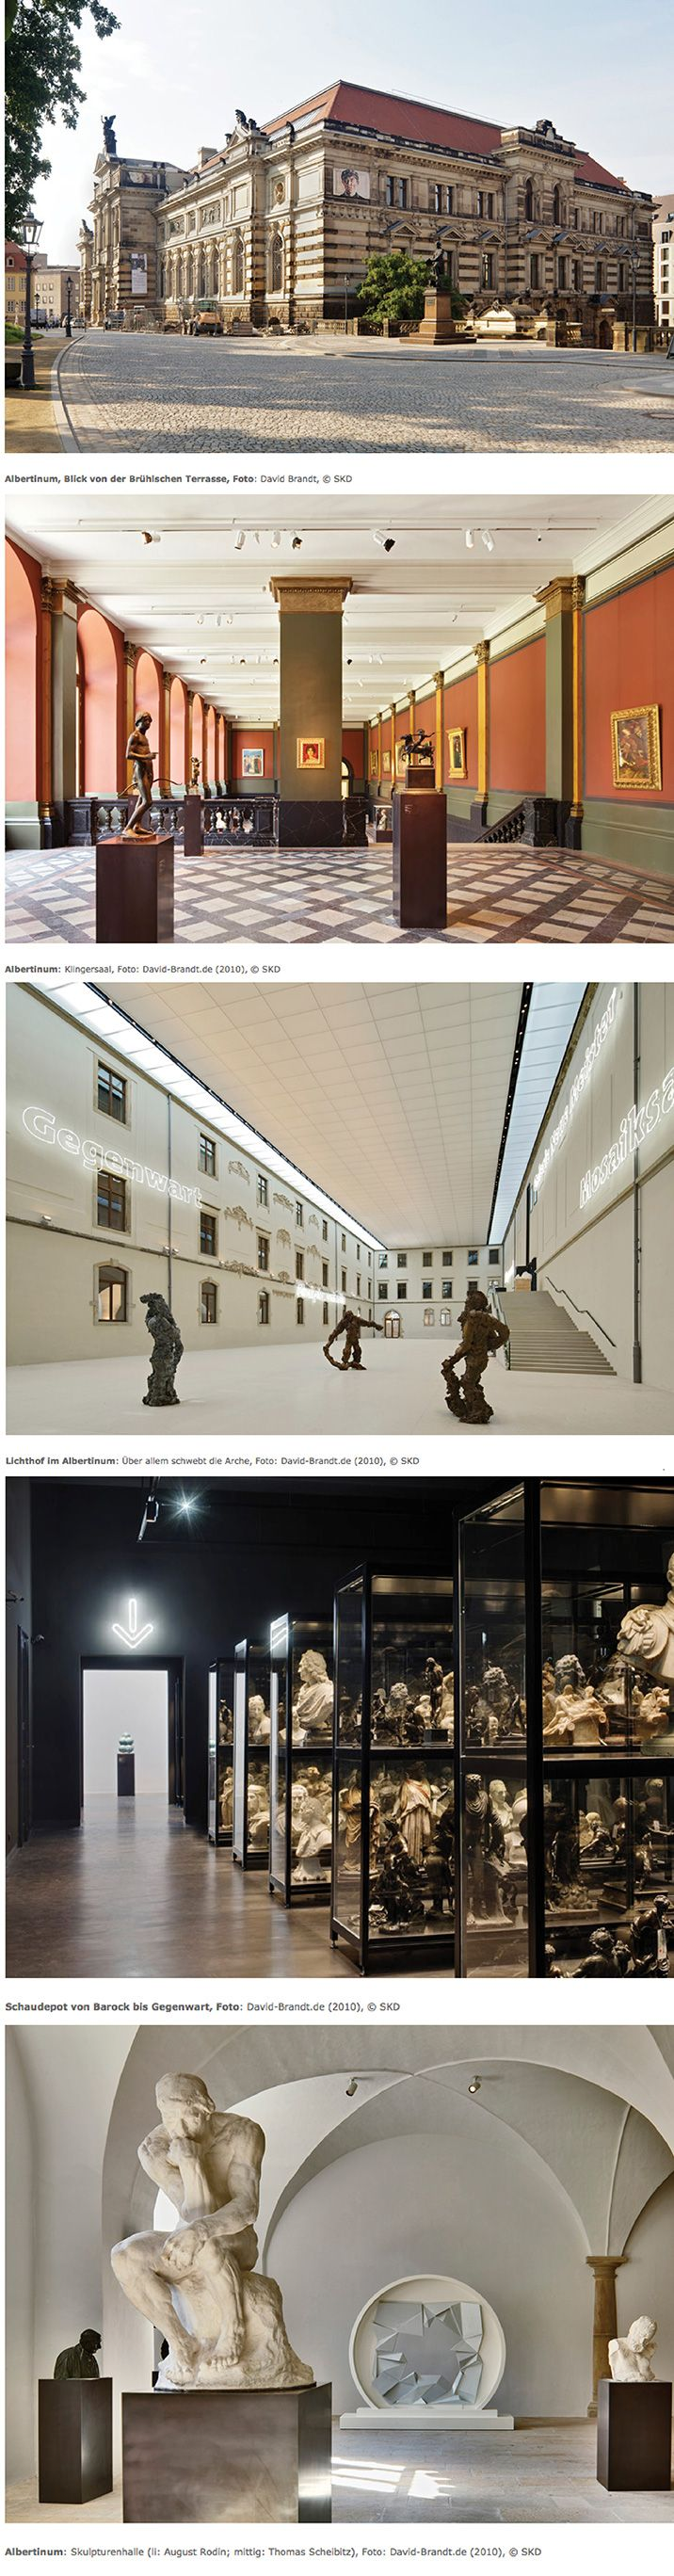 Highly Recommend the Albertinum Museum: Here are my 5 favorite official photos • Staatliche Kunstsammlung Dresden • Photos by David Brandt